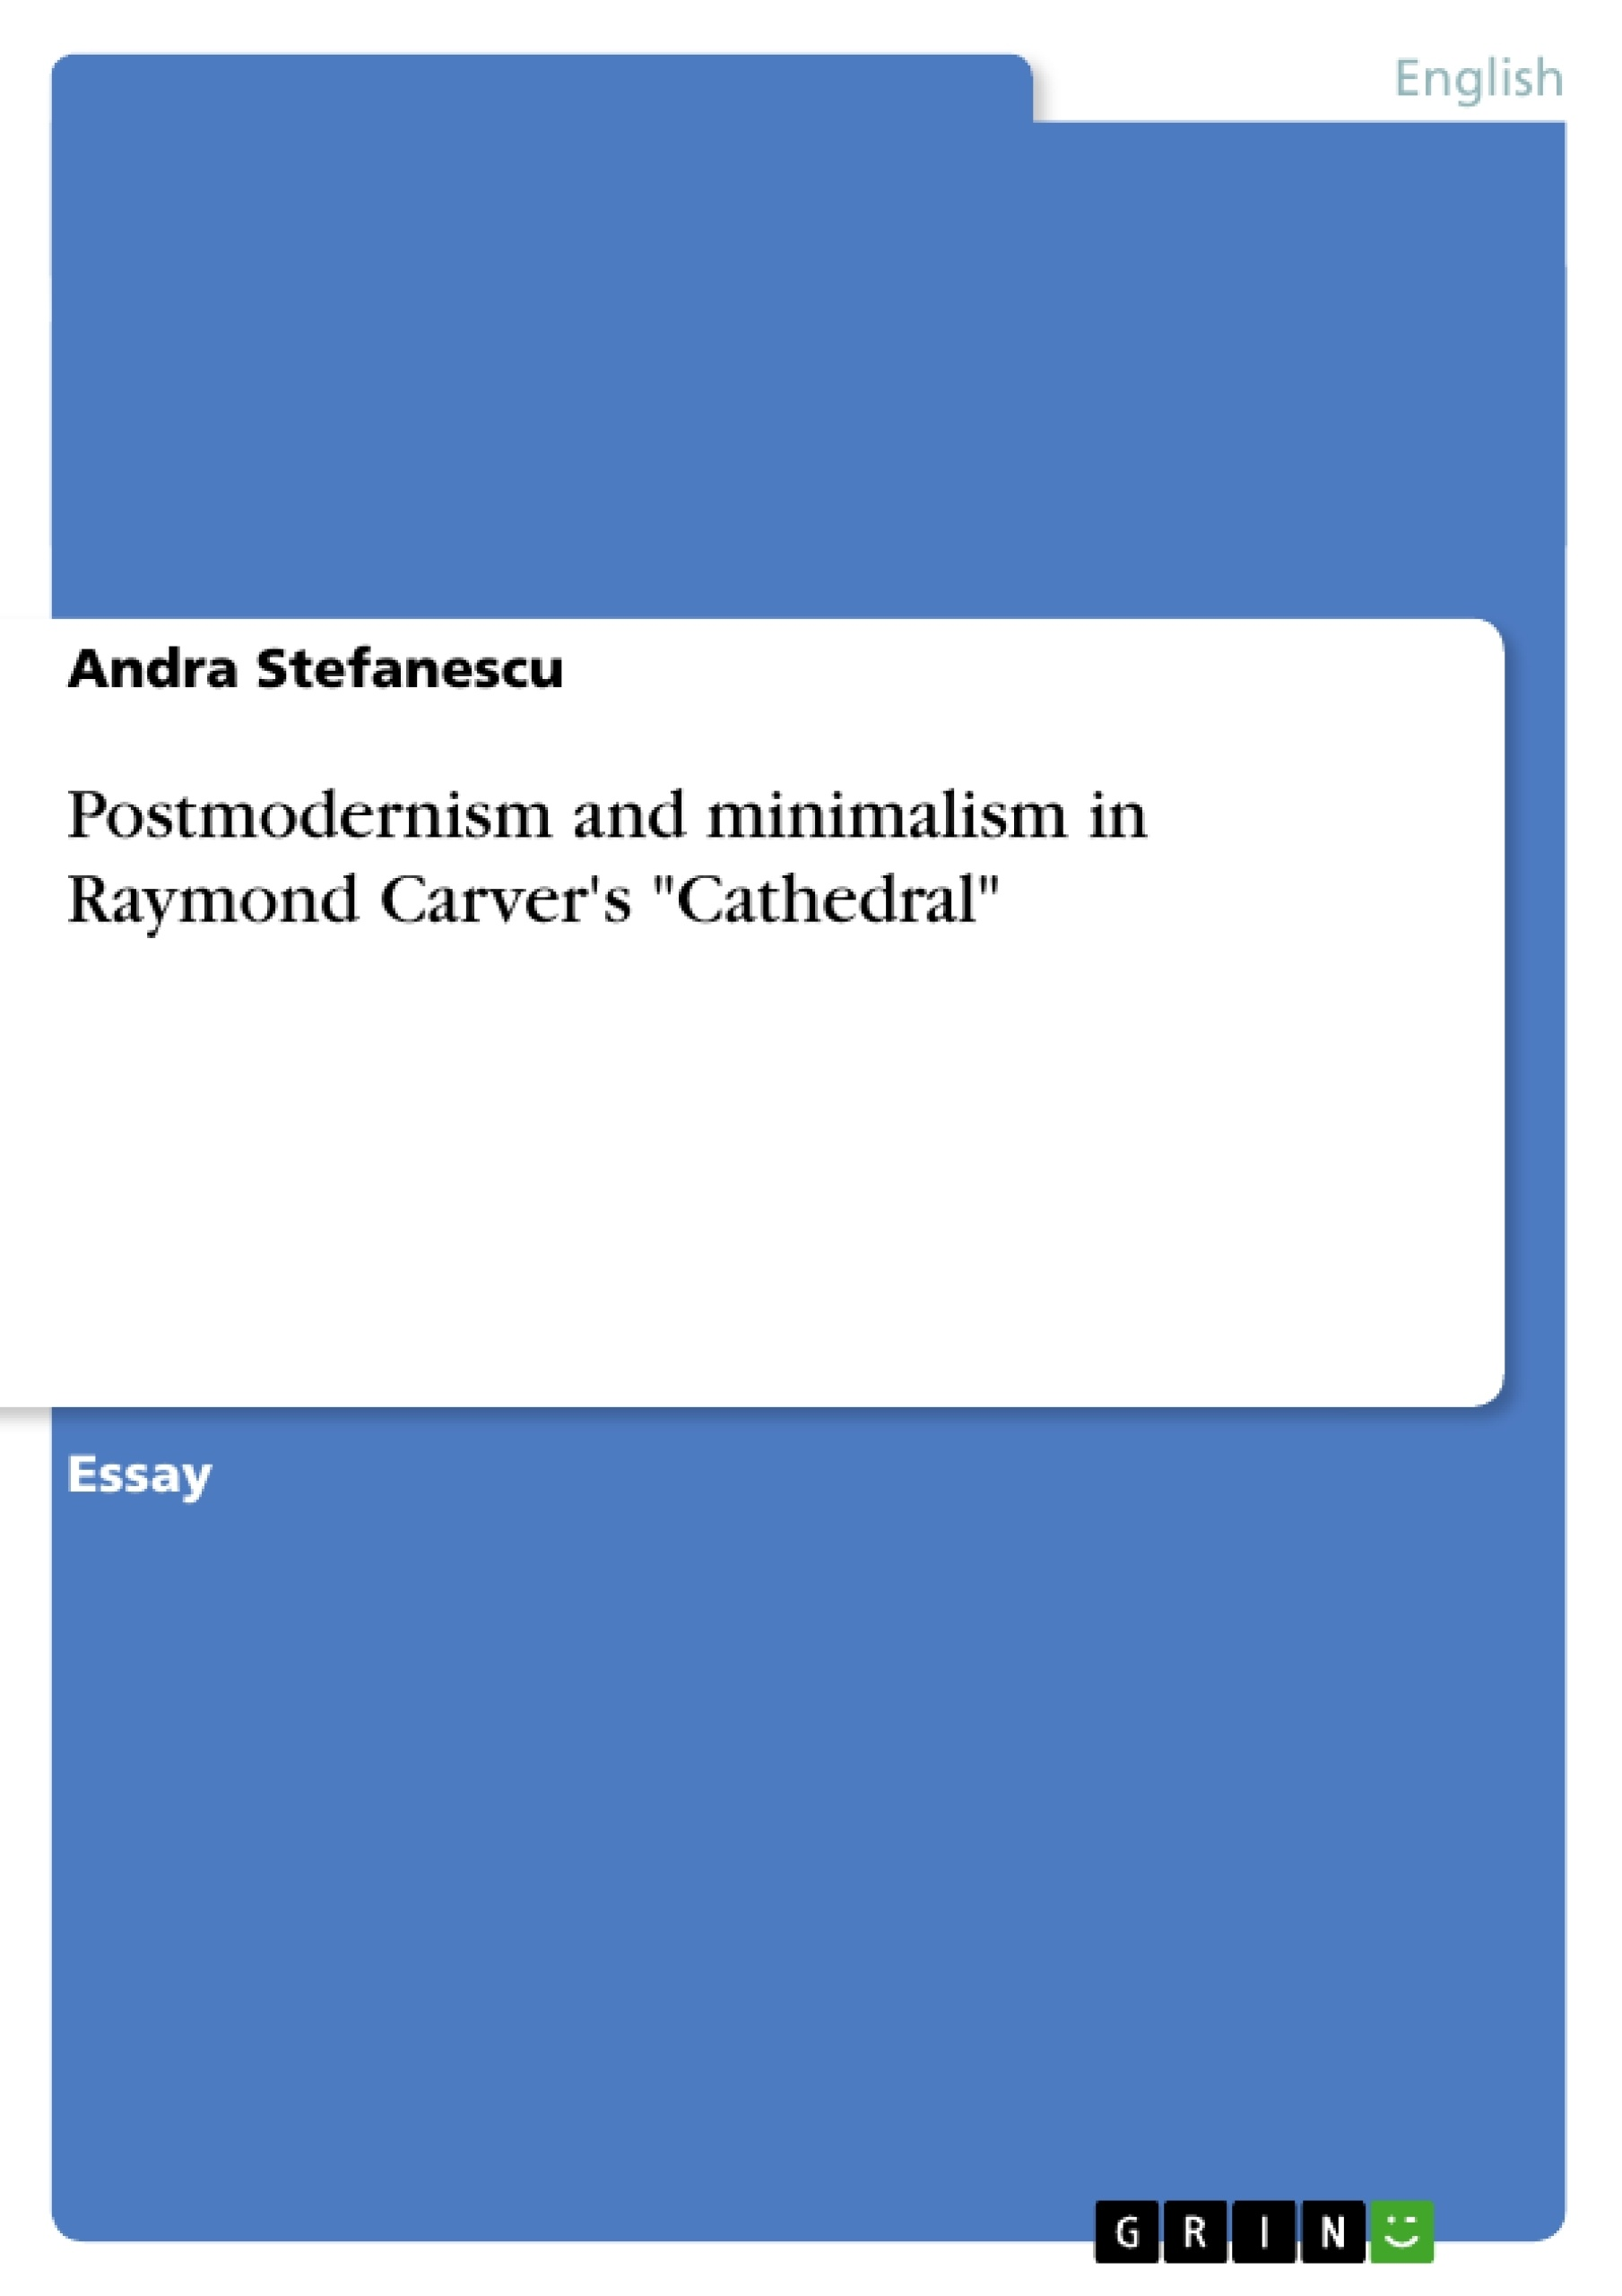 postmodernism and mini sm in raymond carver s cathedral  upload your own papers earn money and win an iphone x